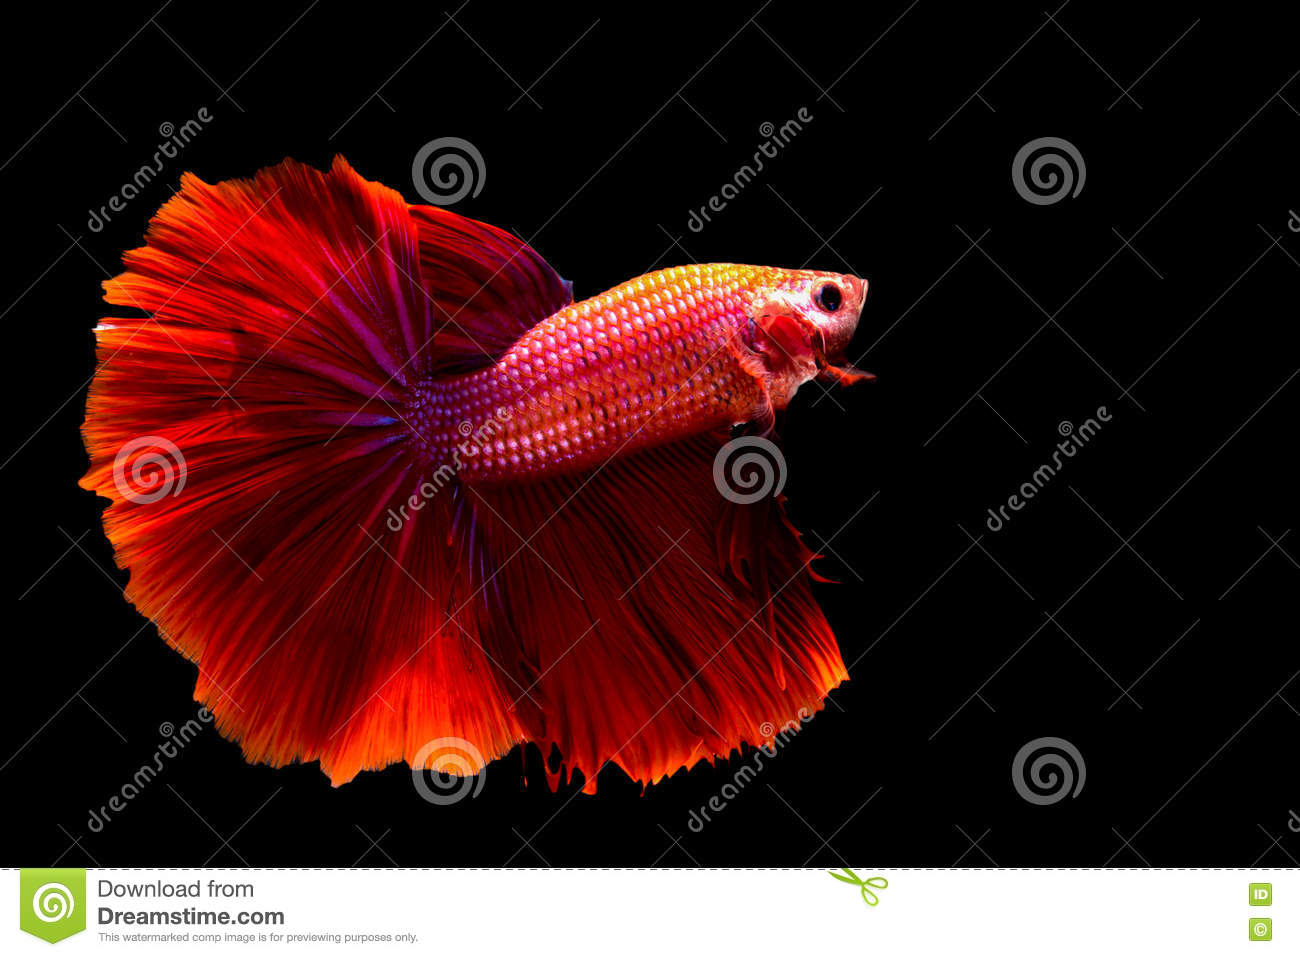 Red fish siamese fighting fish